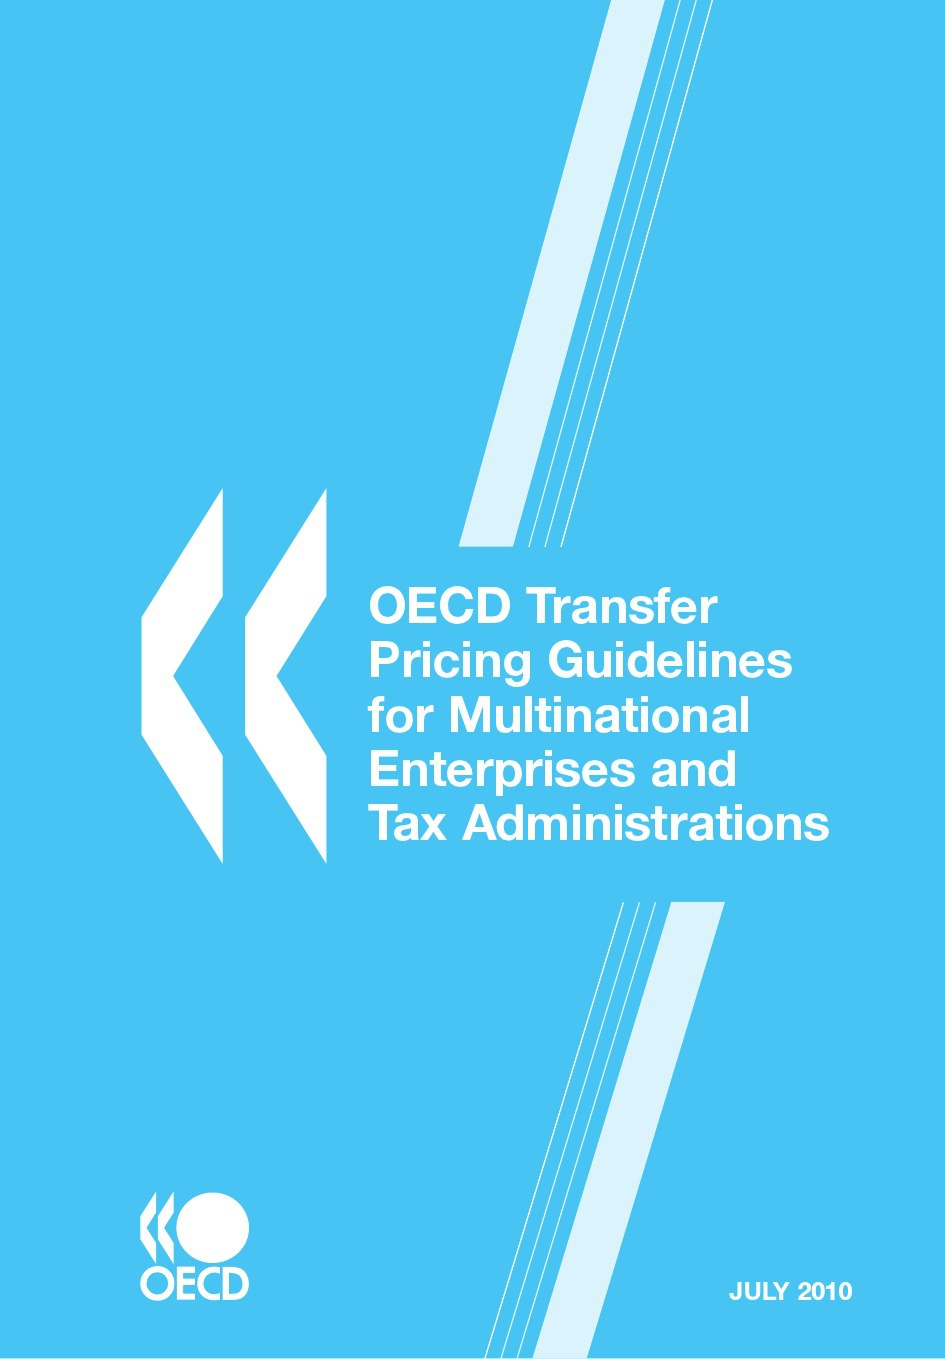 Collective OECD Transfer Pricing Guidelines for Multinational Enterprises and Tax Administrations 2010